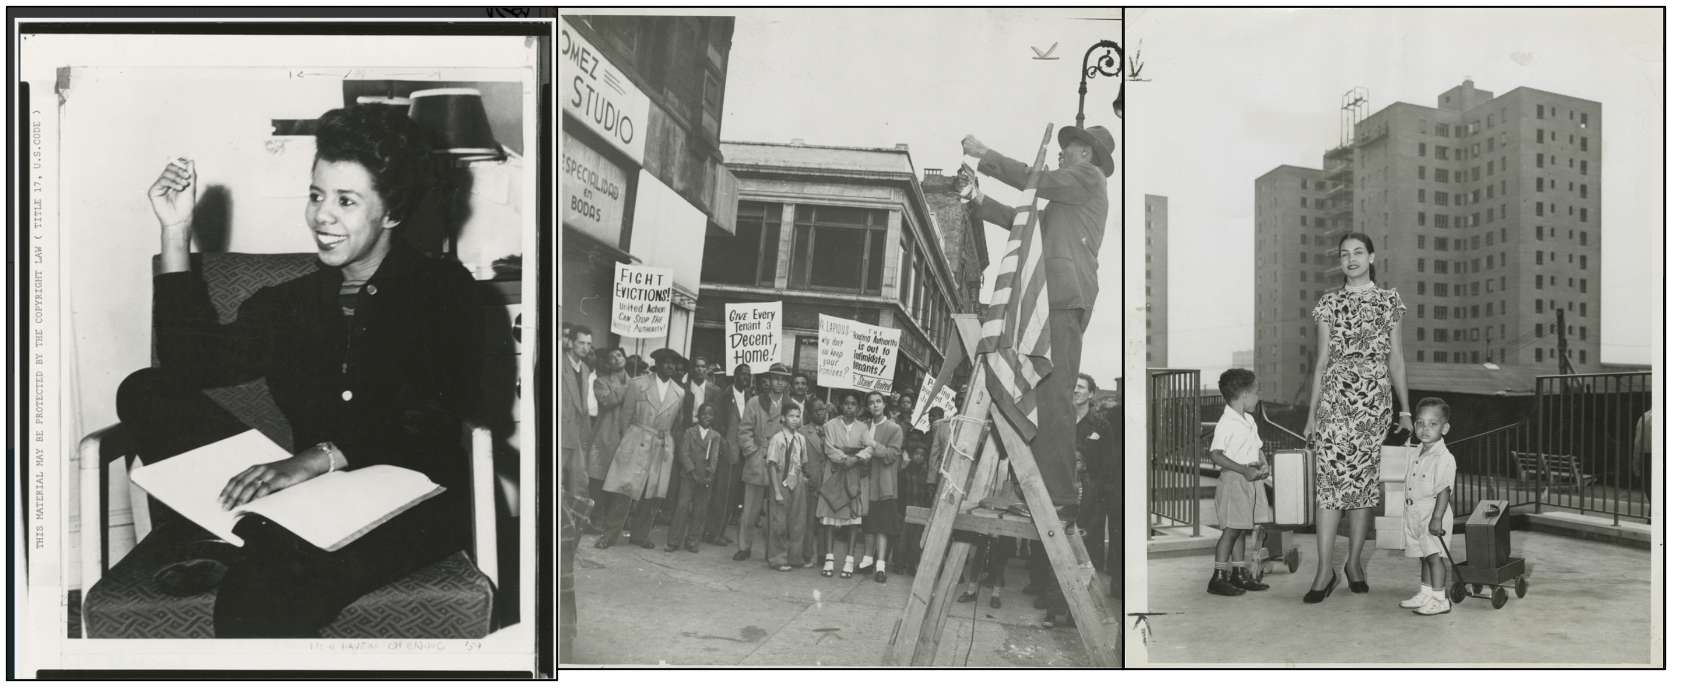 three black and white photos from the Schomburg Center for Research in Black Culture, The New York Public Library